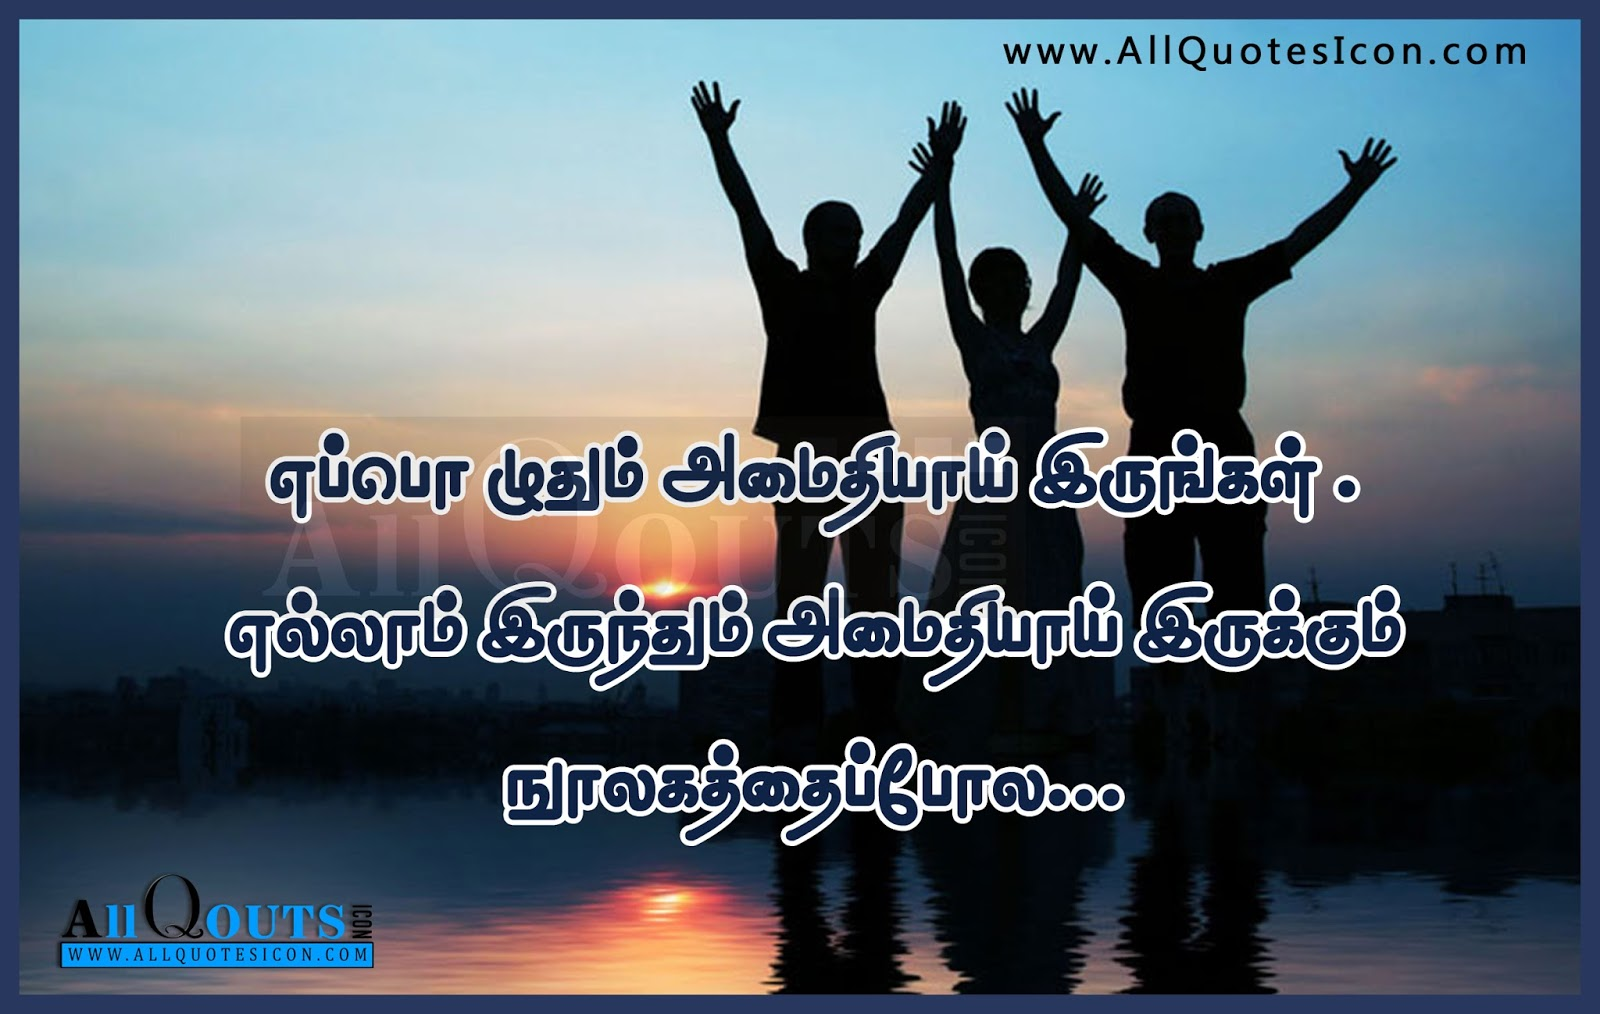 Tamil Friendship Quotes And Images Allquotesicon Telugu